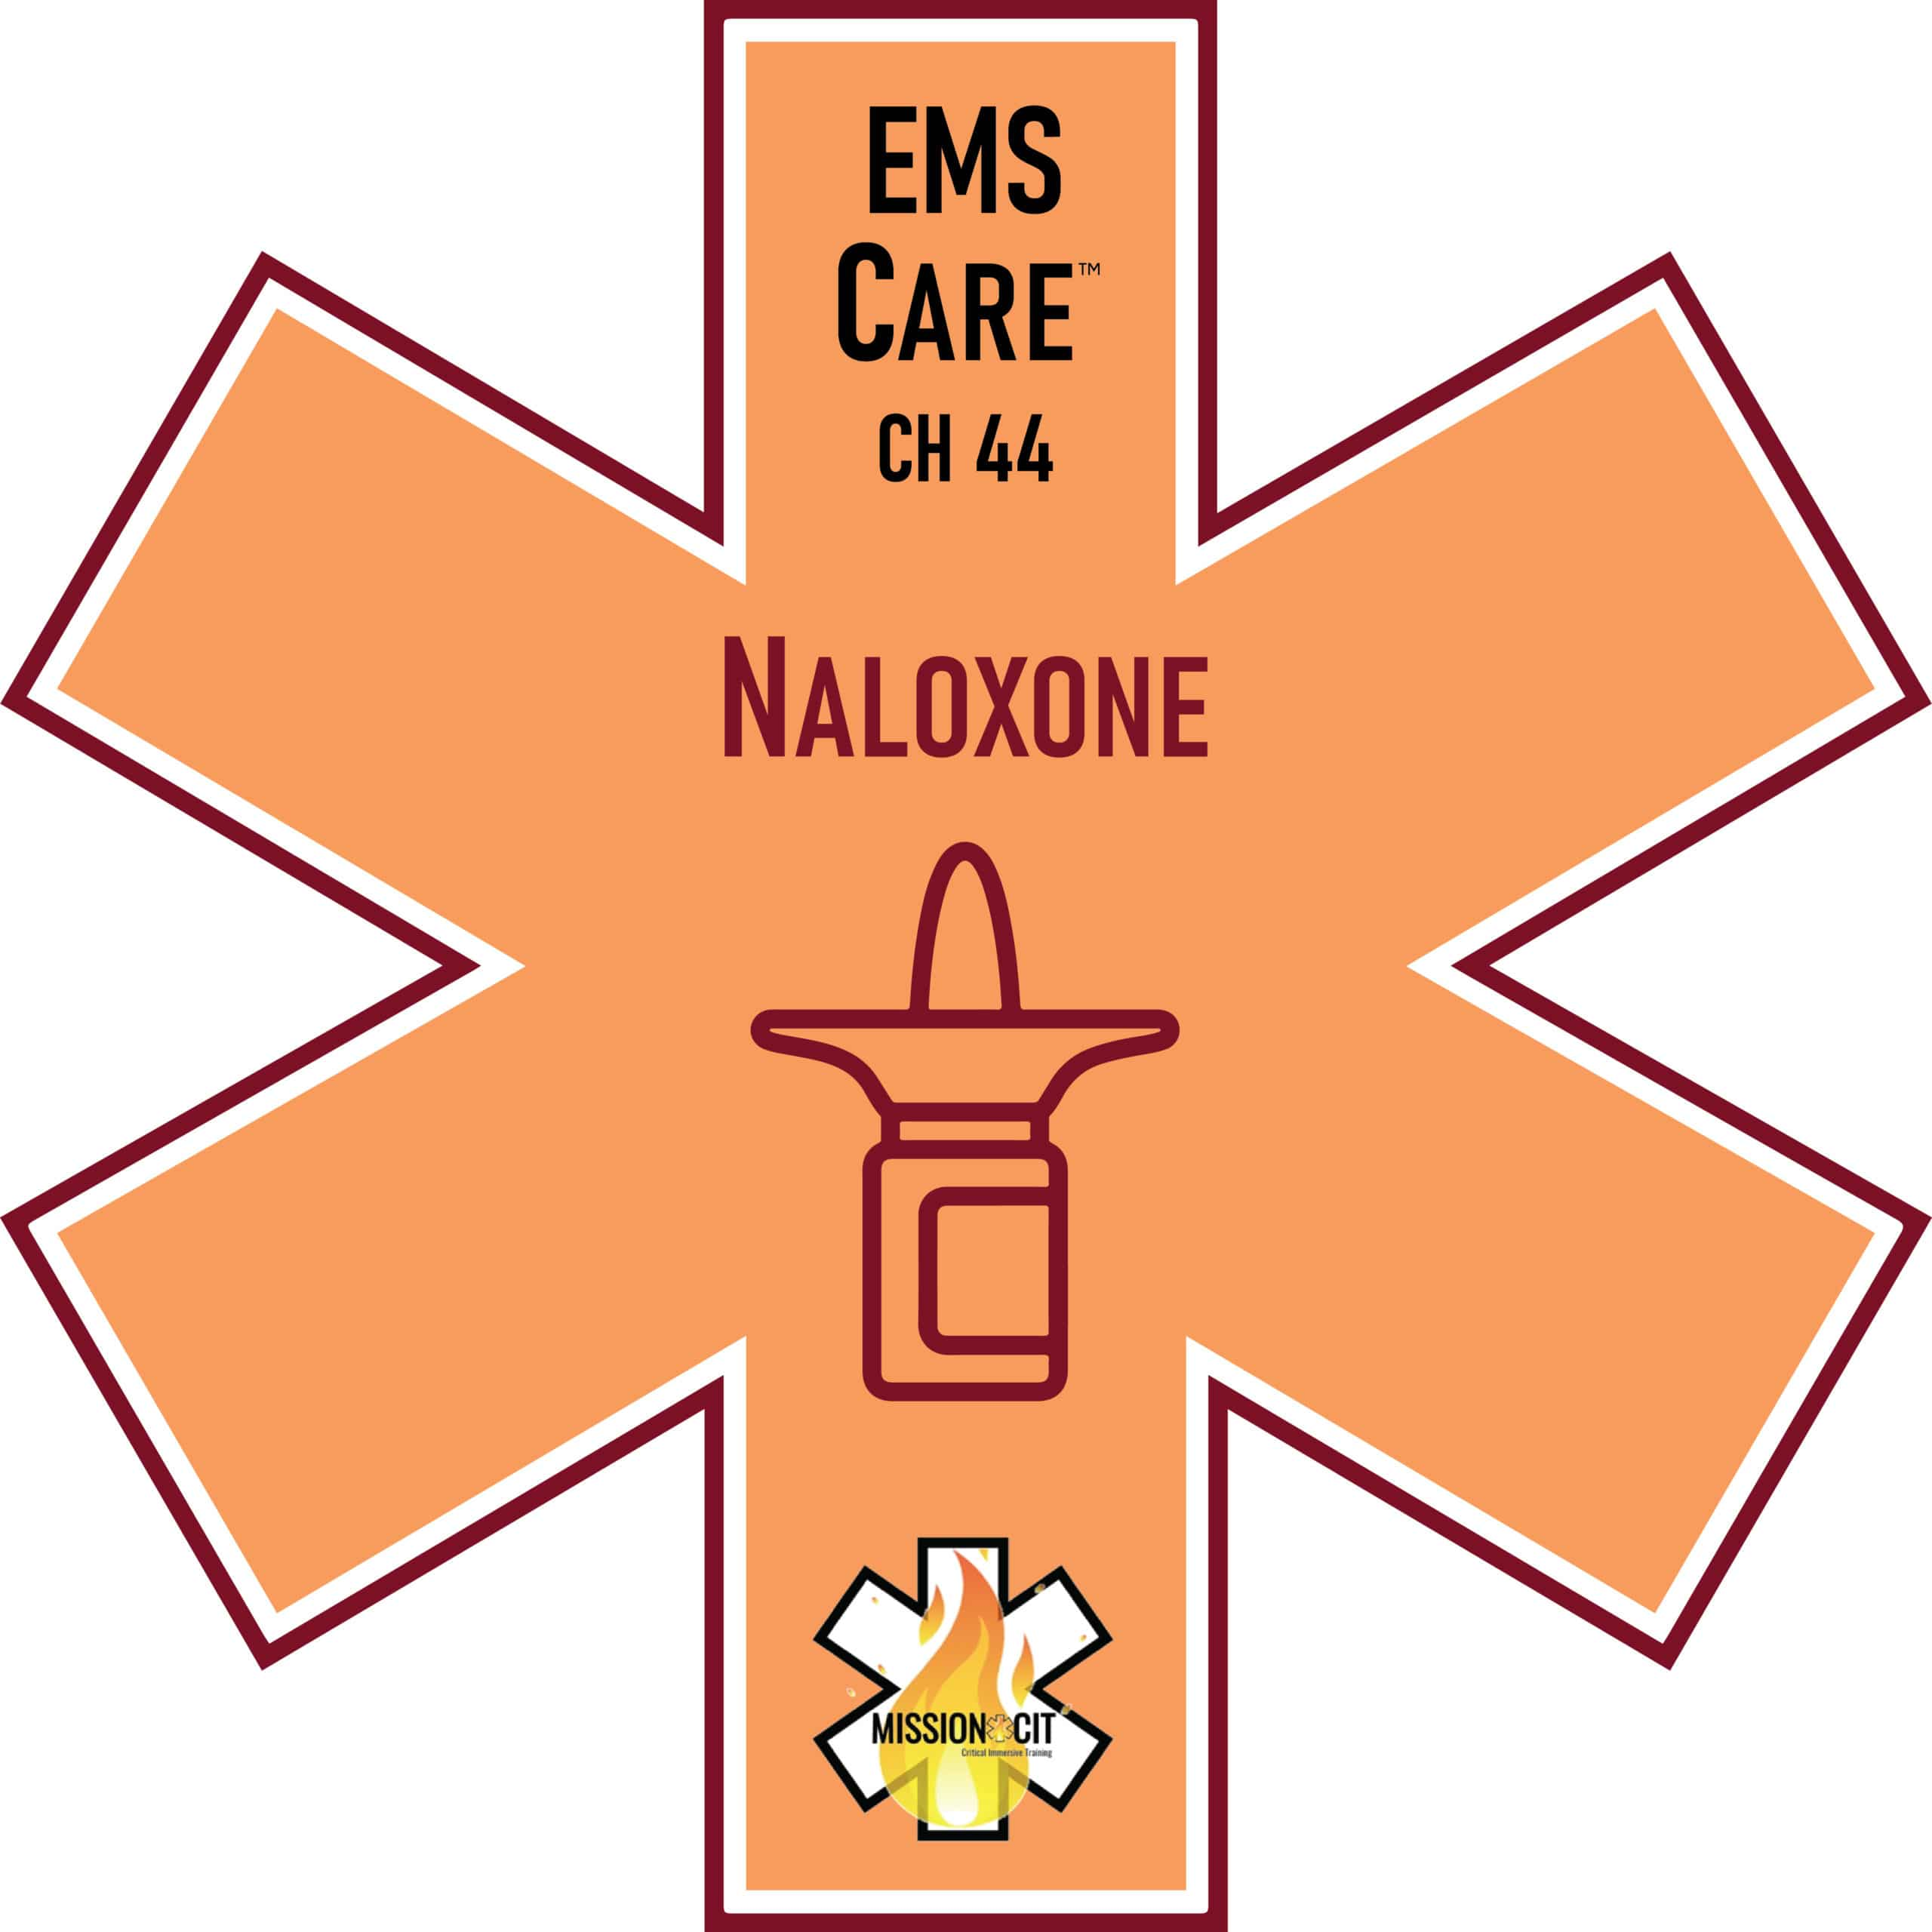 EMS Care Chapter 44 | Naloxone - Narcan